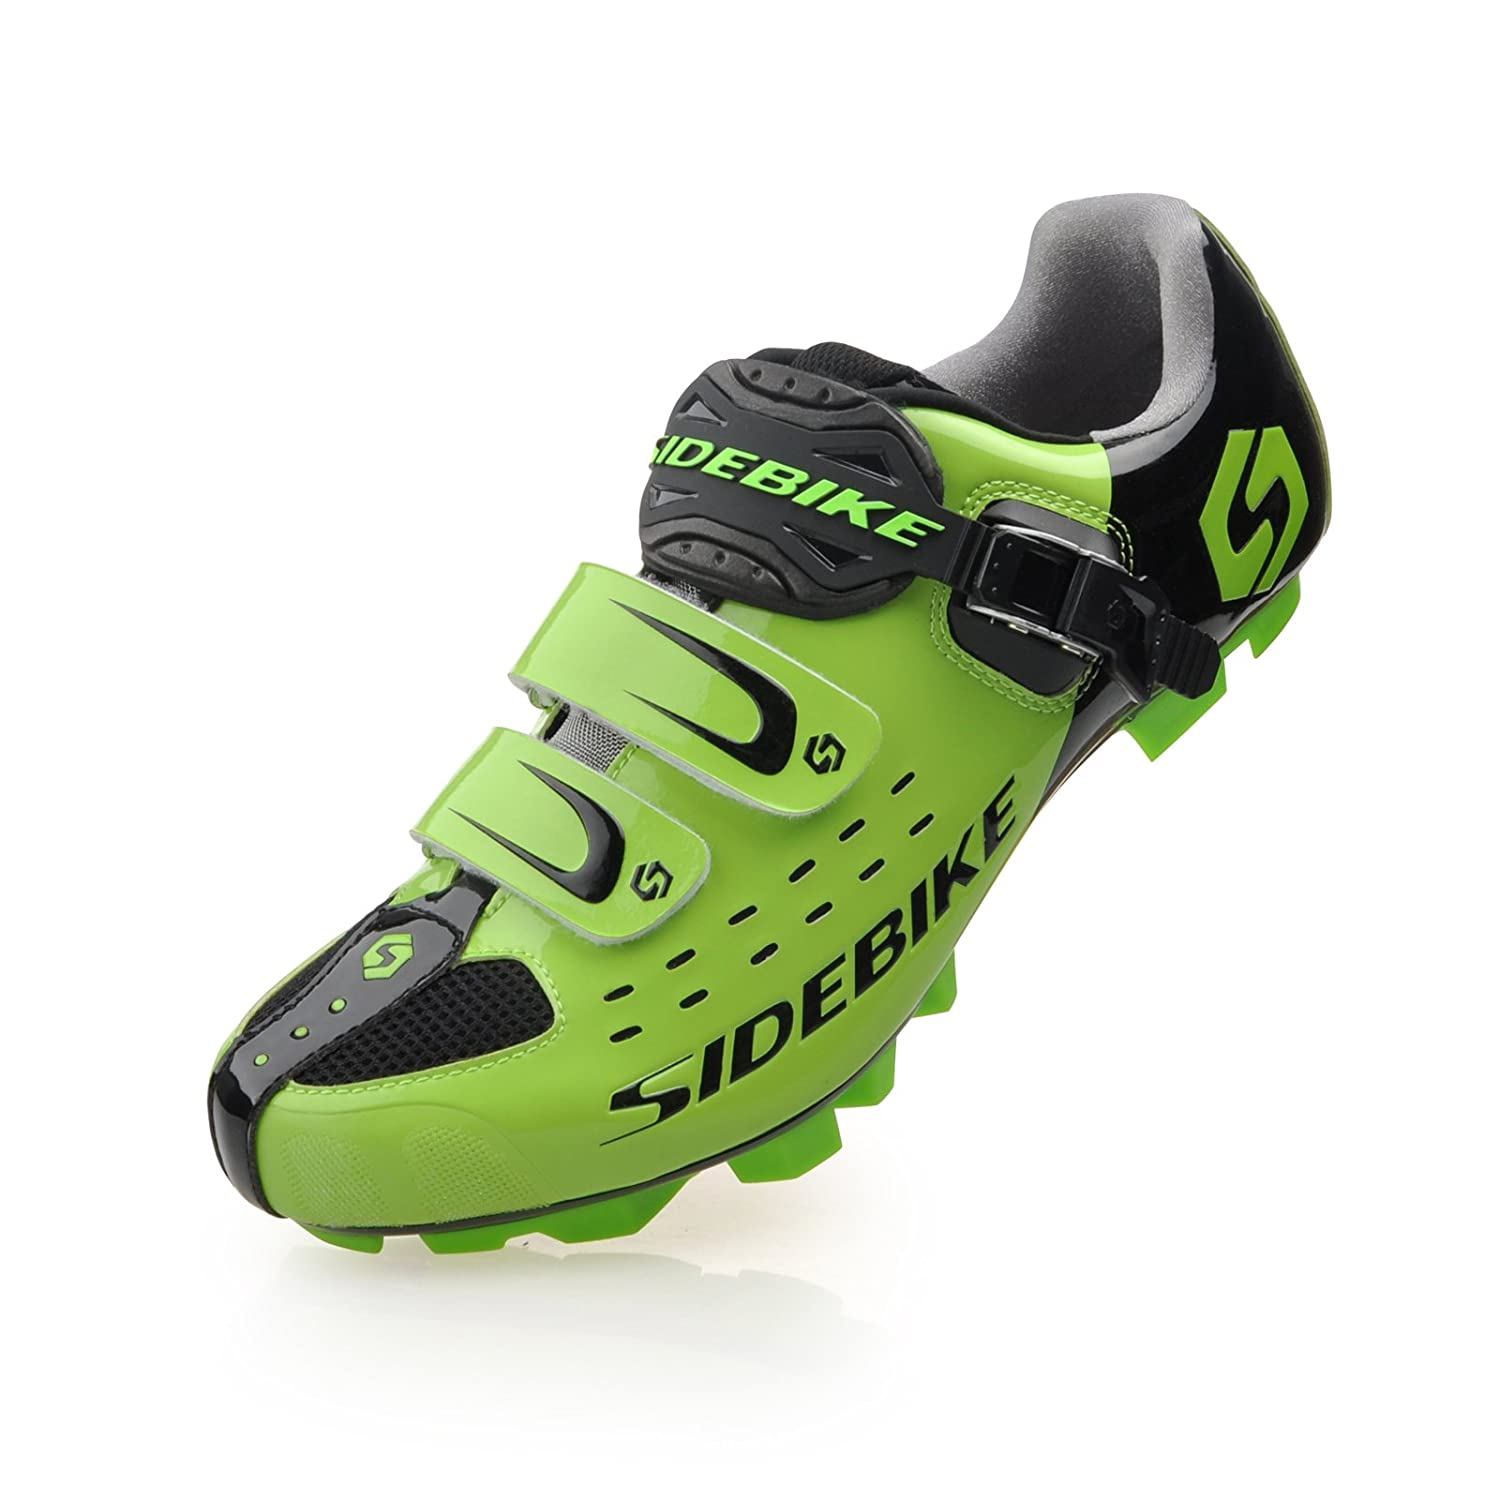 SD01-MTB-Black green Smartodoors Sidebike SD002 Men's All-Around Road Cycling shoes with Carbon Soles